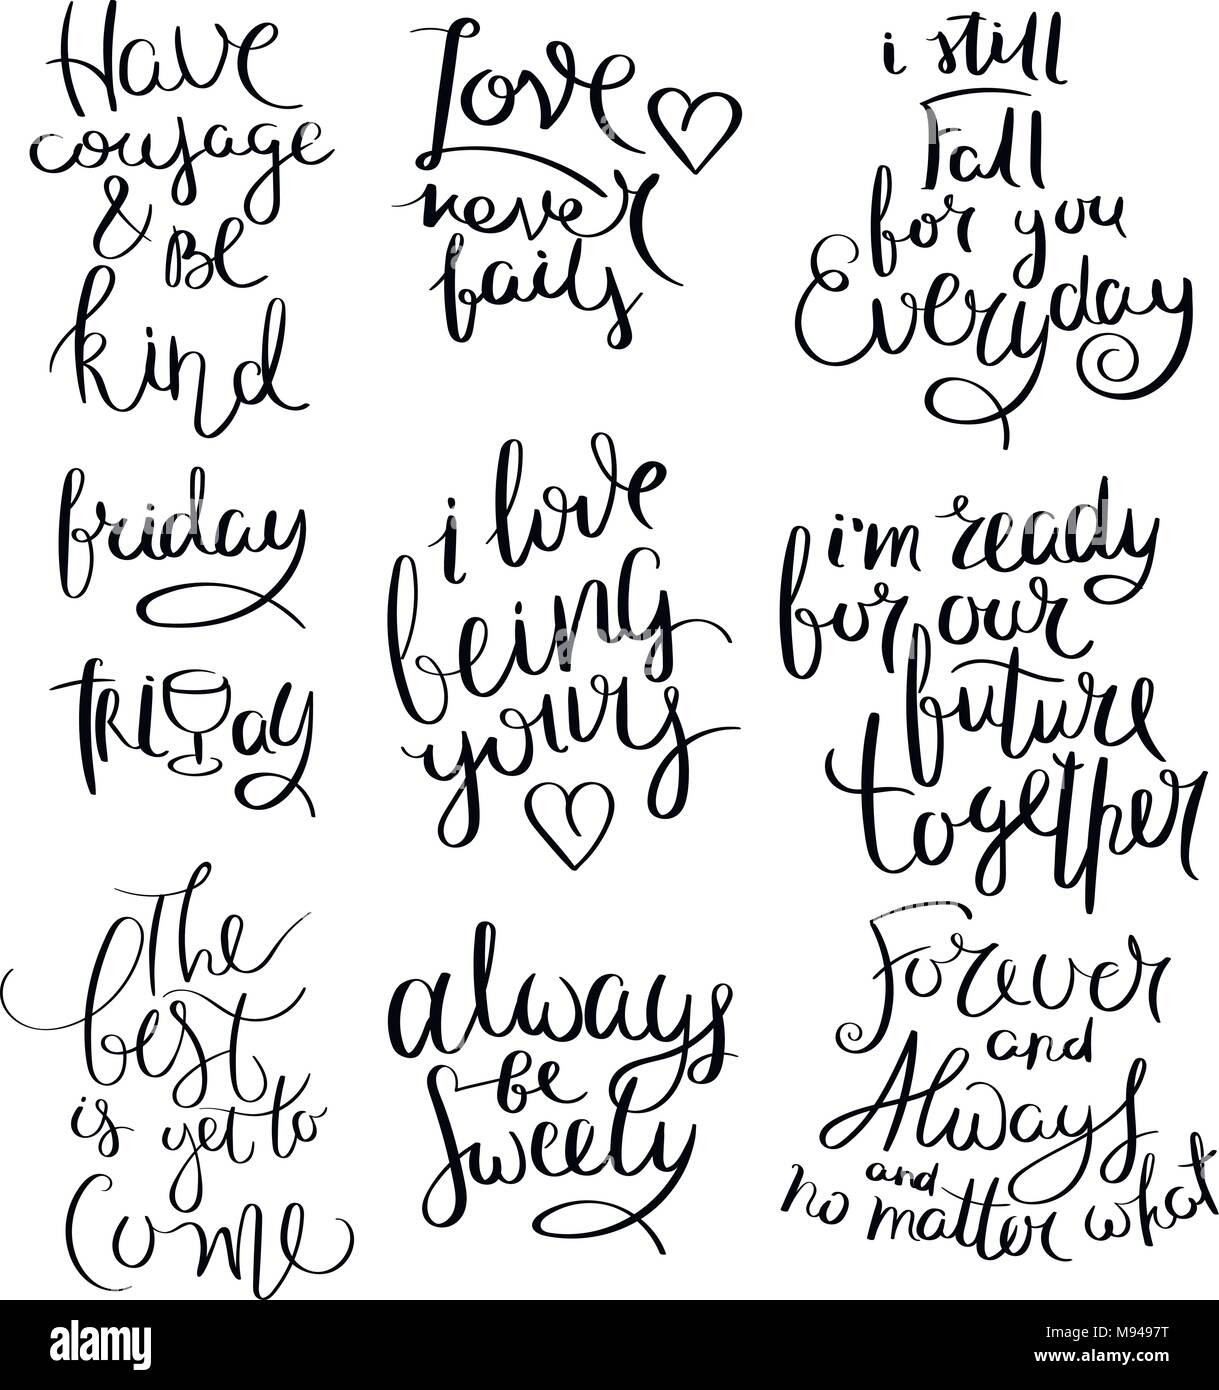 Collection Of Hand Written Calligraphy Quotes Motivation For Life